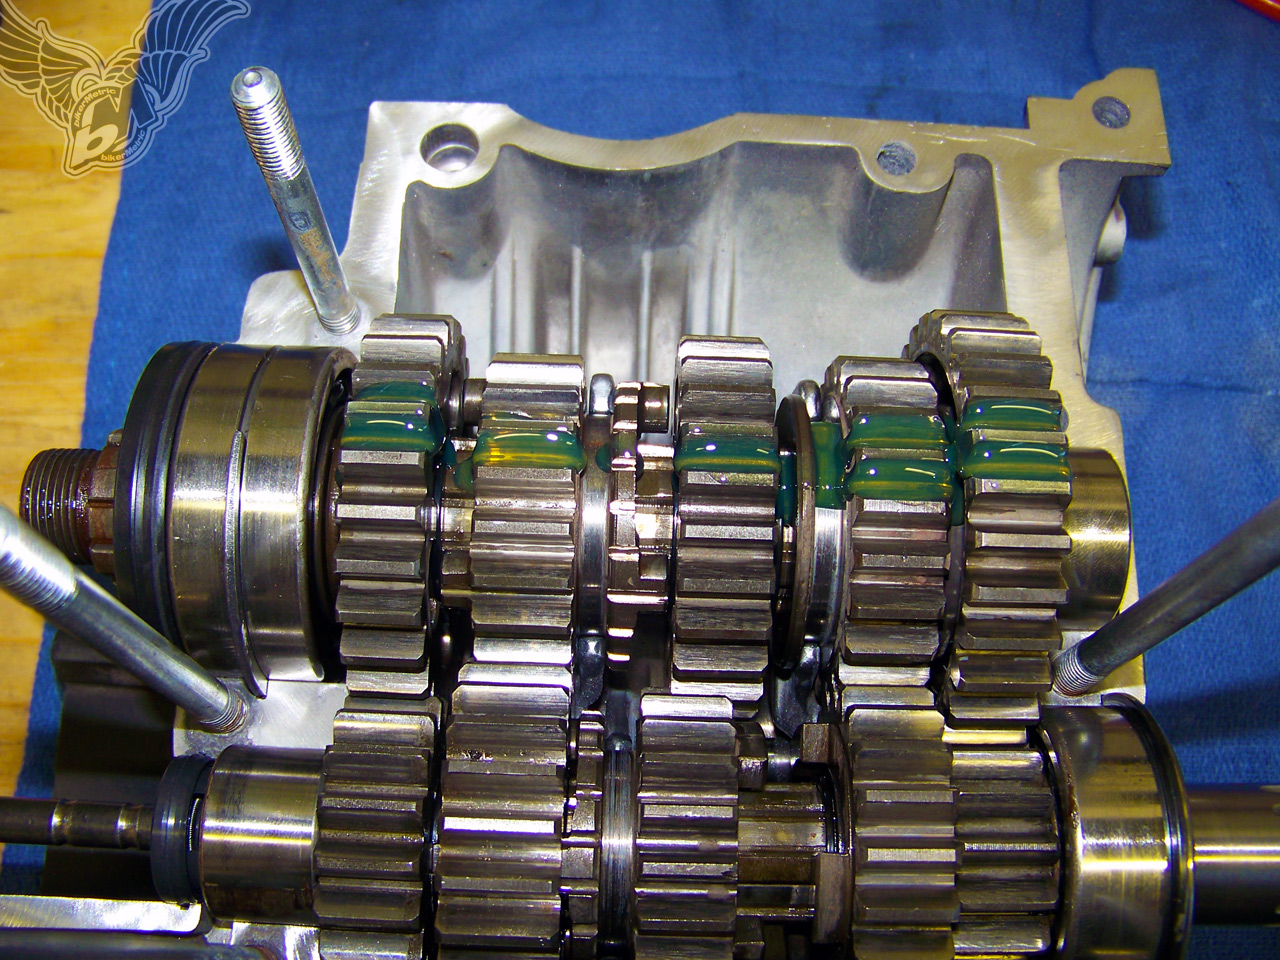 Techtips Xs650 Transmission Assembly By Hugh Owings Bikermetric 1981 Rephased Wiring Diagram We Are Now Ready To Put The Cases Together I Like Use Hondabond On My Yamaha Engines Im Weird That Make Sure You Something Similar But Do